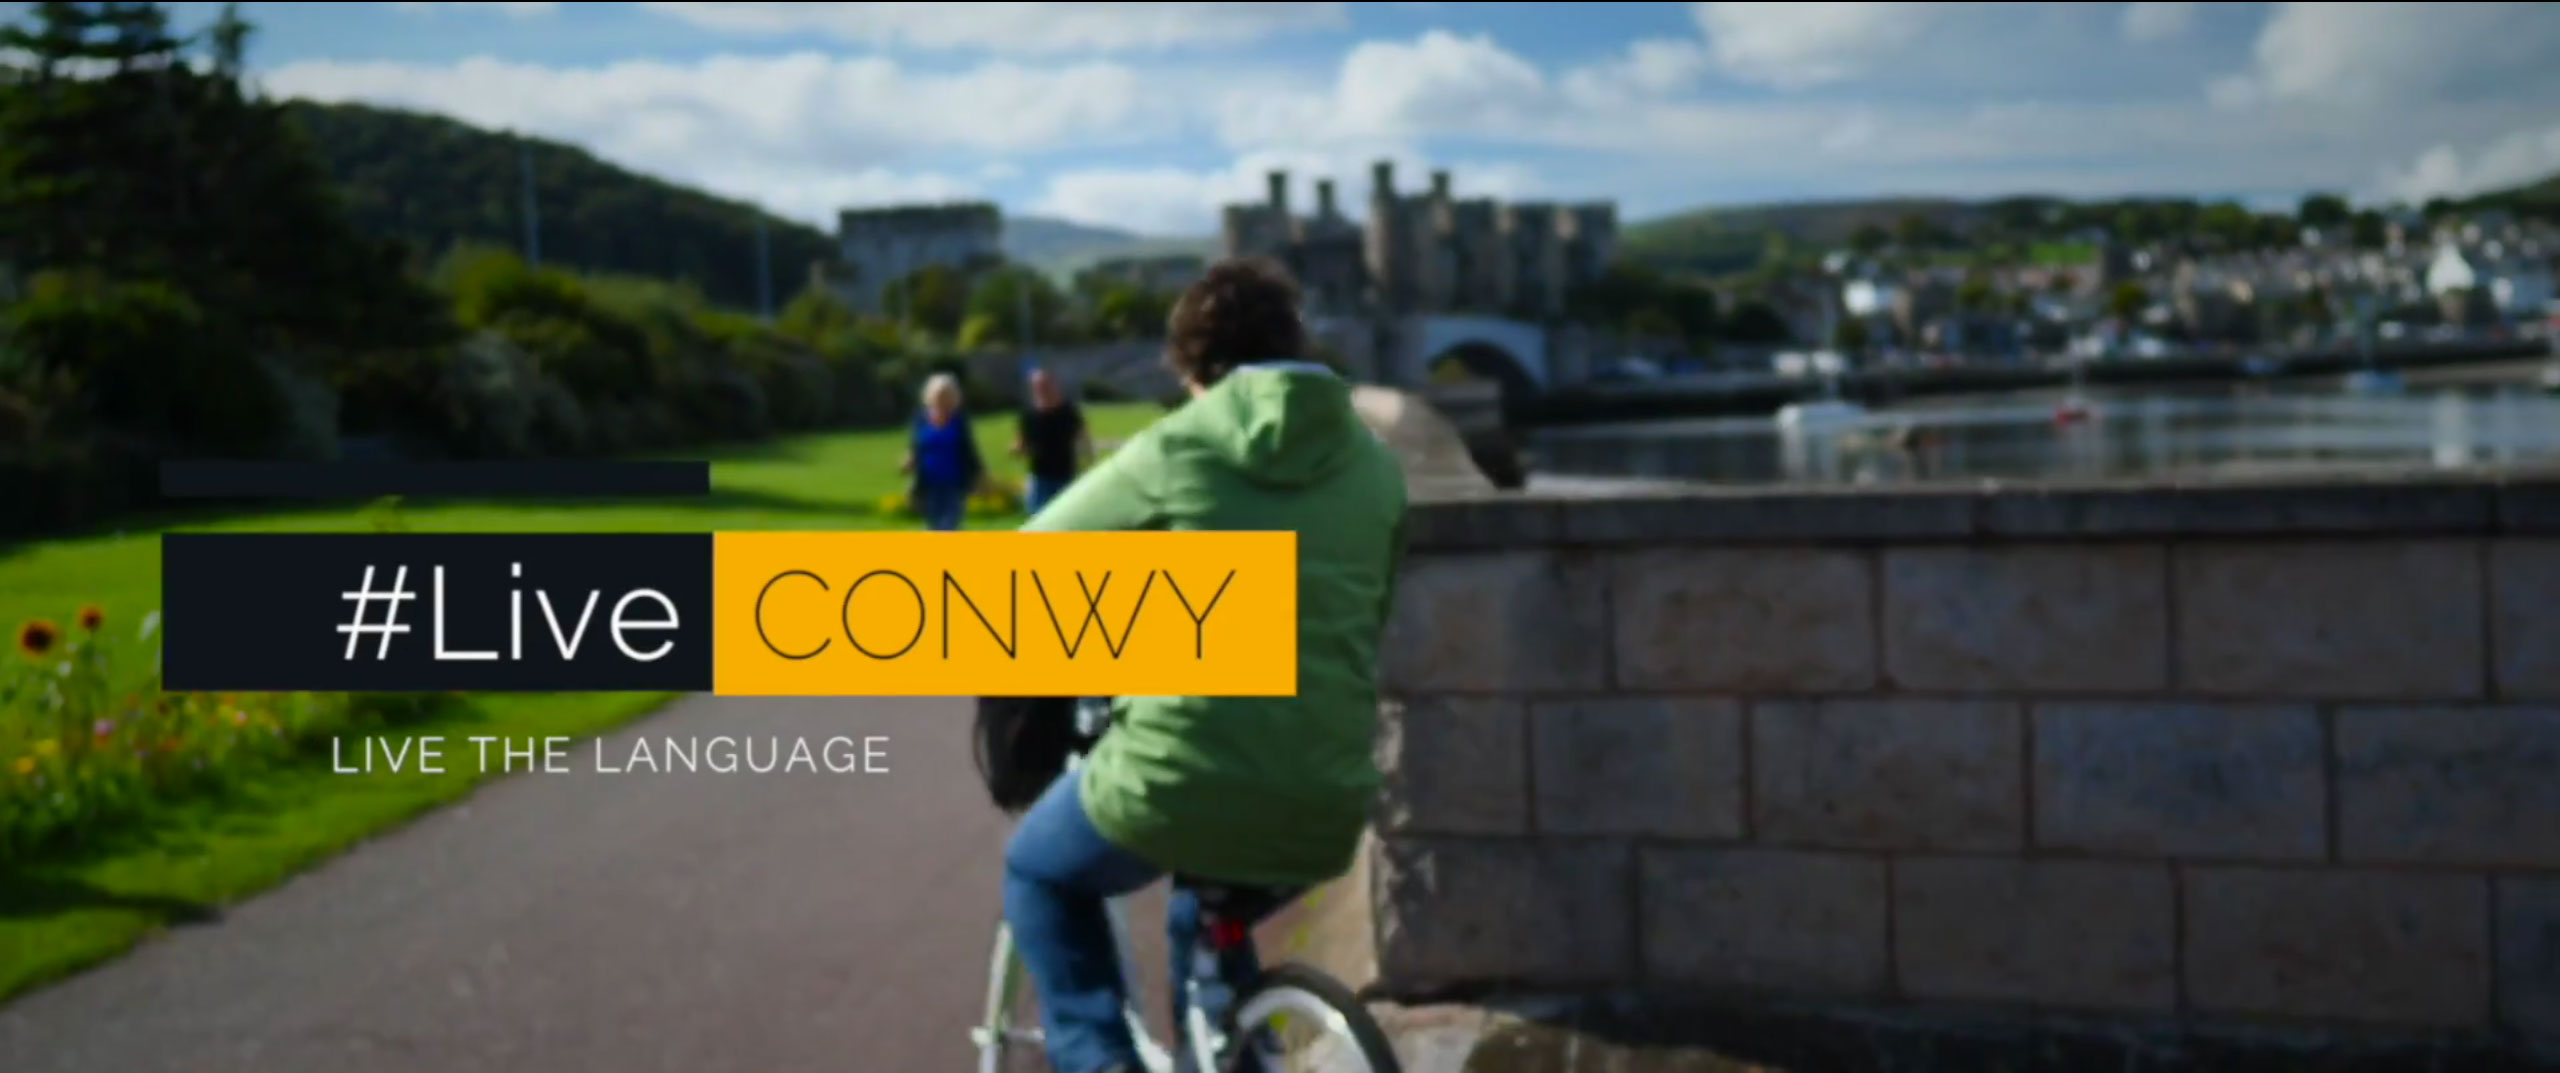 LiveConwy 1